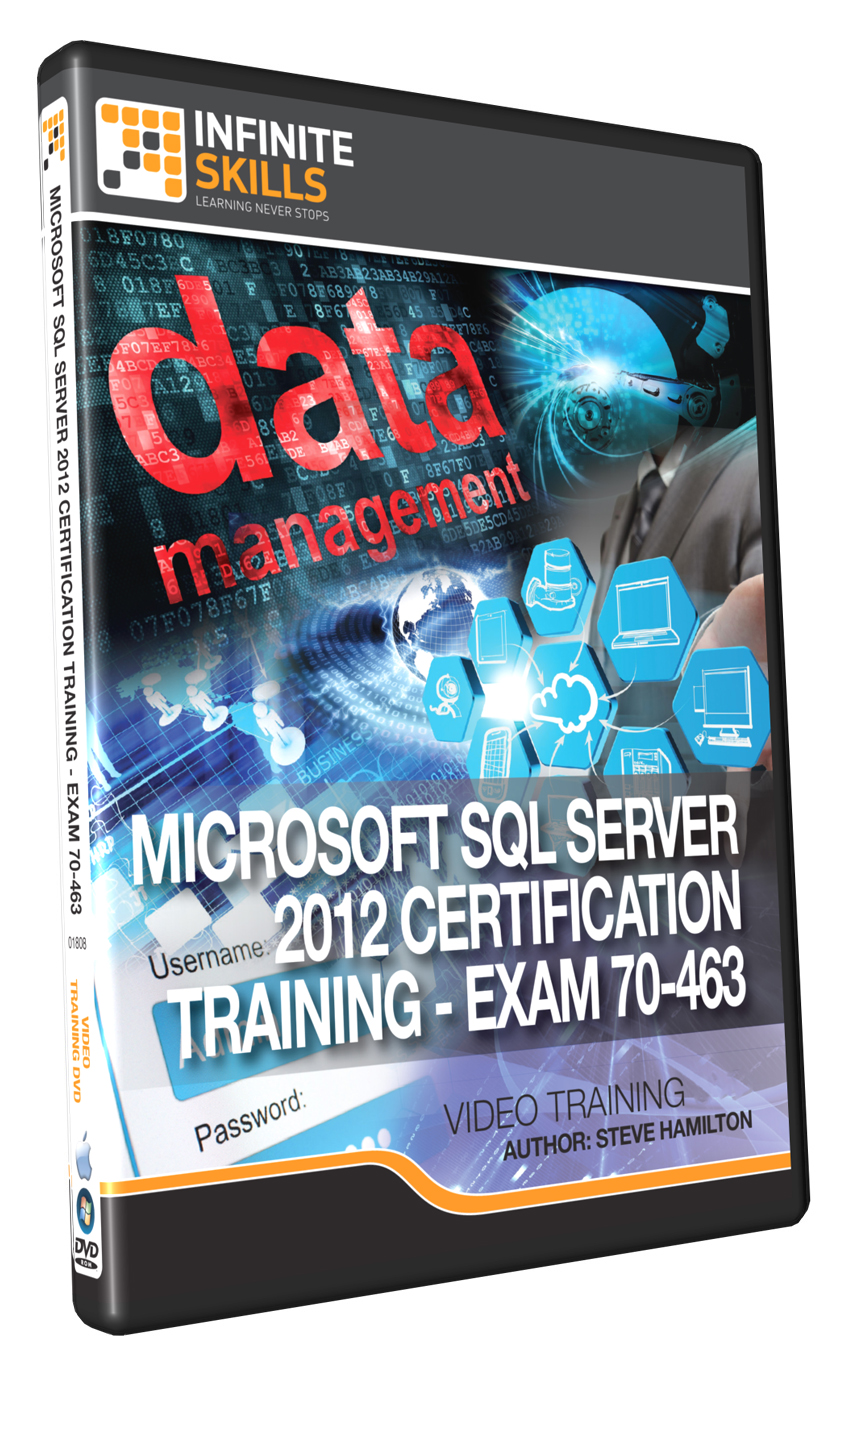 Infinite skills microsoft sql server 2012 70 463 certification infinite skills microsoft sql server 2012 70 463 certification training offers task based visual guide to study for the sql server 2012 70 463 exam xflitez Gallery